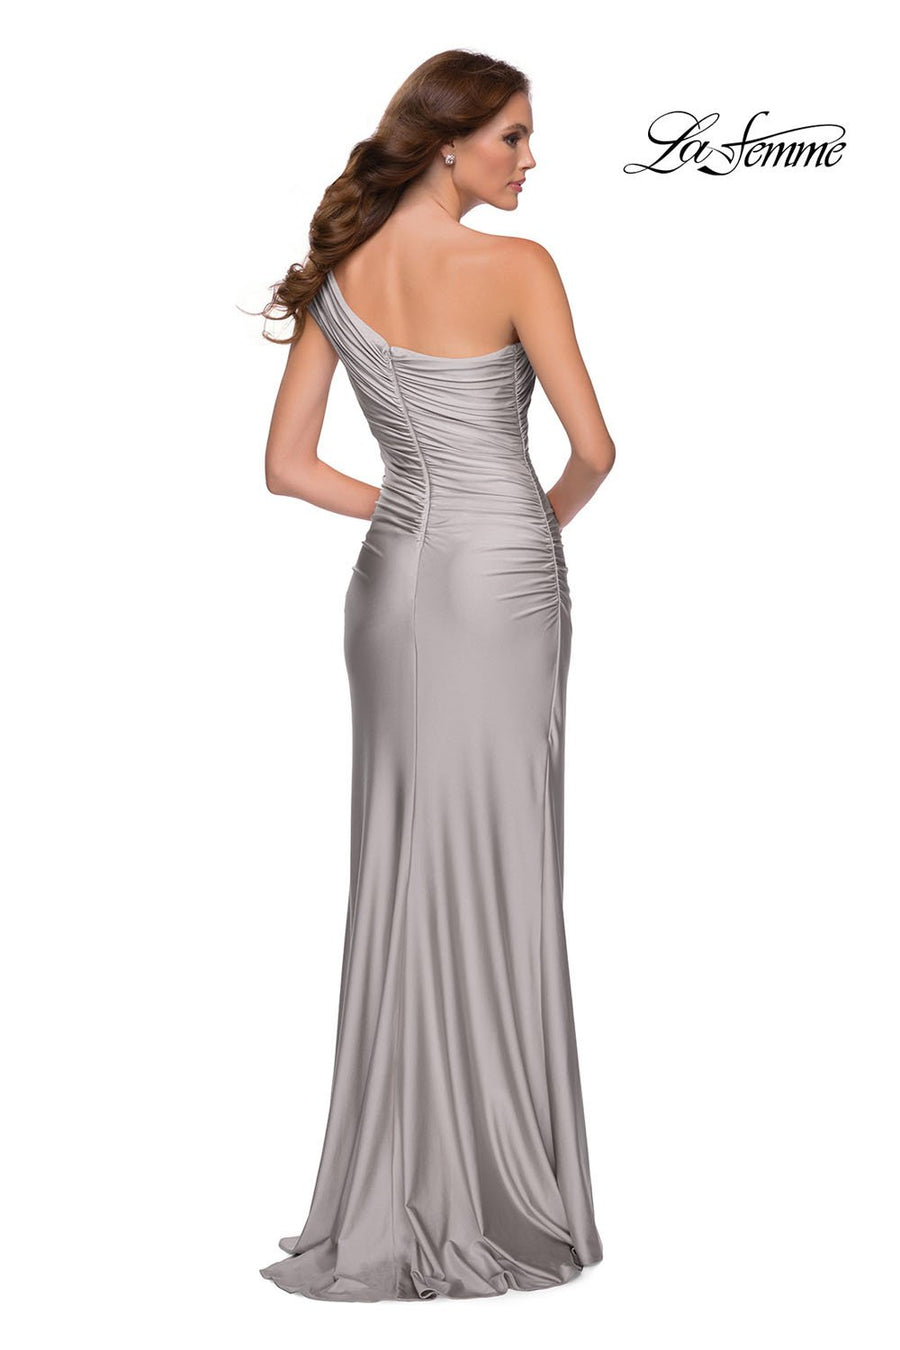 La Femme 29619 prom dress images.  La Femme 29619 is available in these colors: Black, Mauve, Navy, Silver.